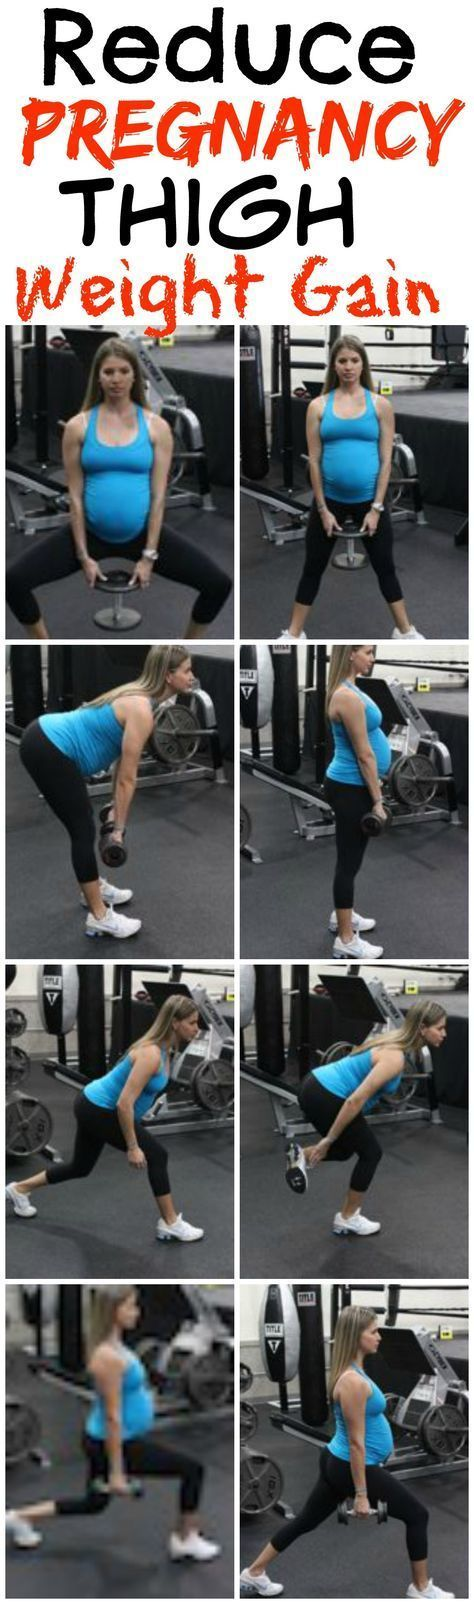 Reduce Thigh Weight Gain With This Pregnancy Workout. These exercises are safe and can be done from home. Lots of great pregnancy exercise tips and pregnancy diet tips to help have a healthy and fit pregnancy.    http://michellemariefit.com/reduce-thigh-weight-gain-with-this-pregnancy-workout/ #pregnancydiet